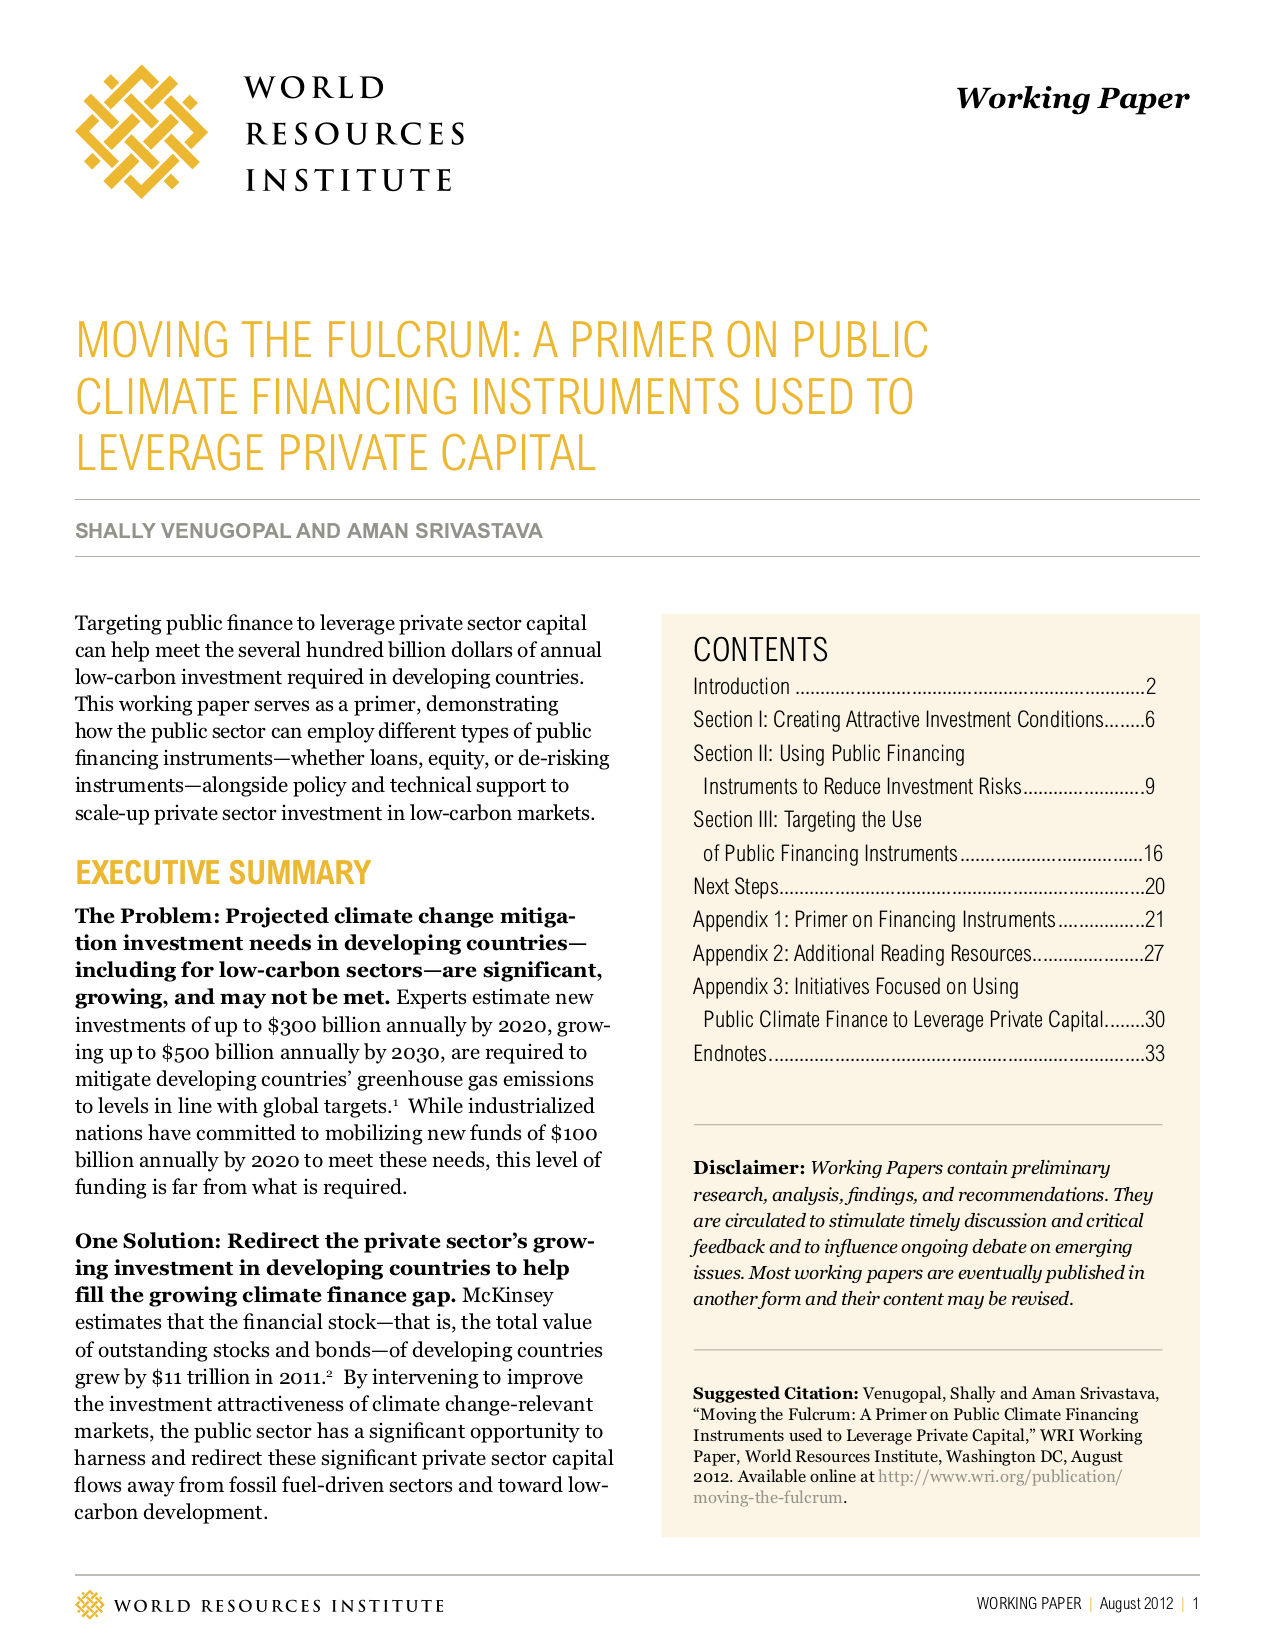 Moving the Fulcrum: A Primer on Public Climate Financing Instruments Used to Leverage Private Capital